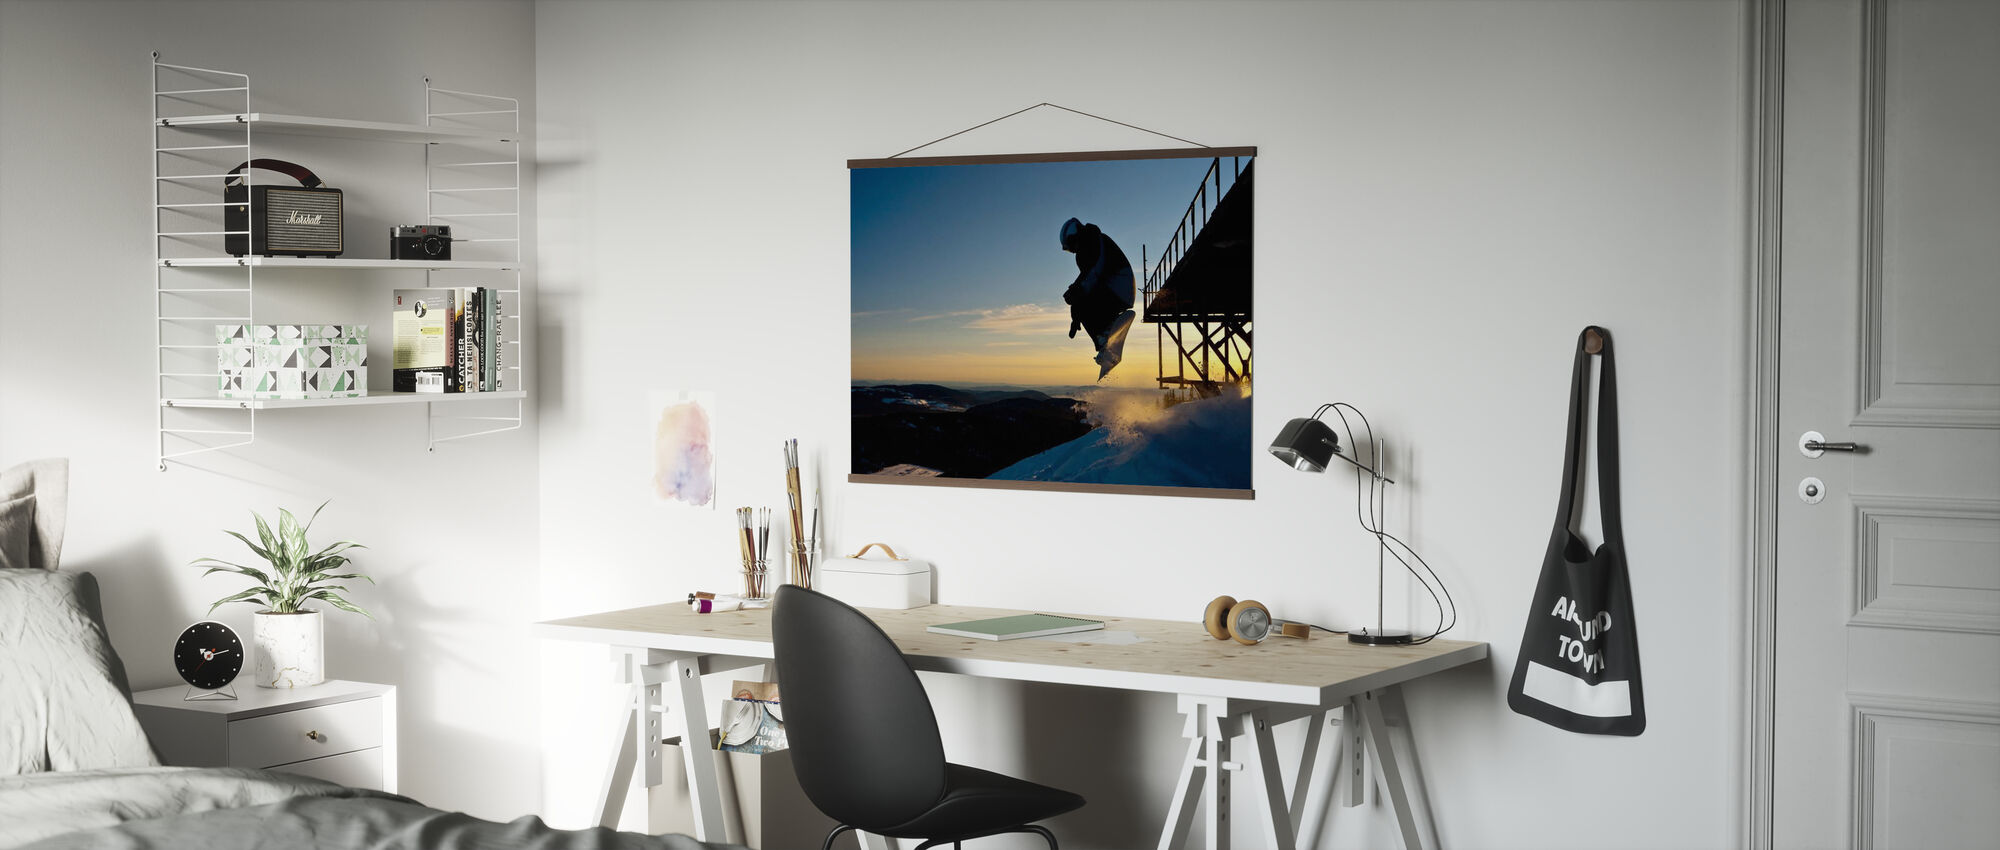 Snowboarder Jump from a Bridge - Poster - Office